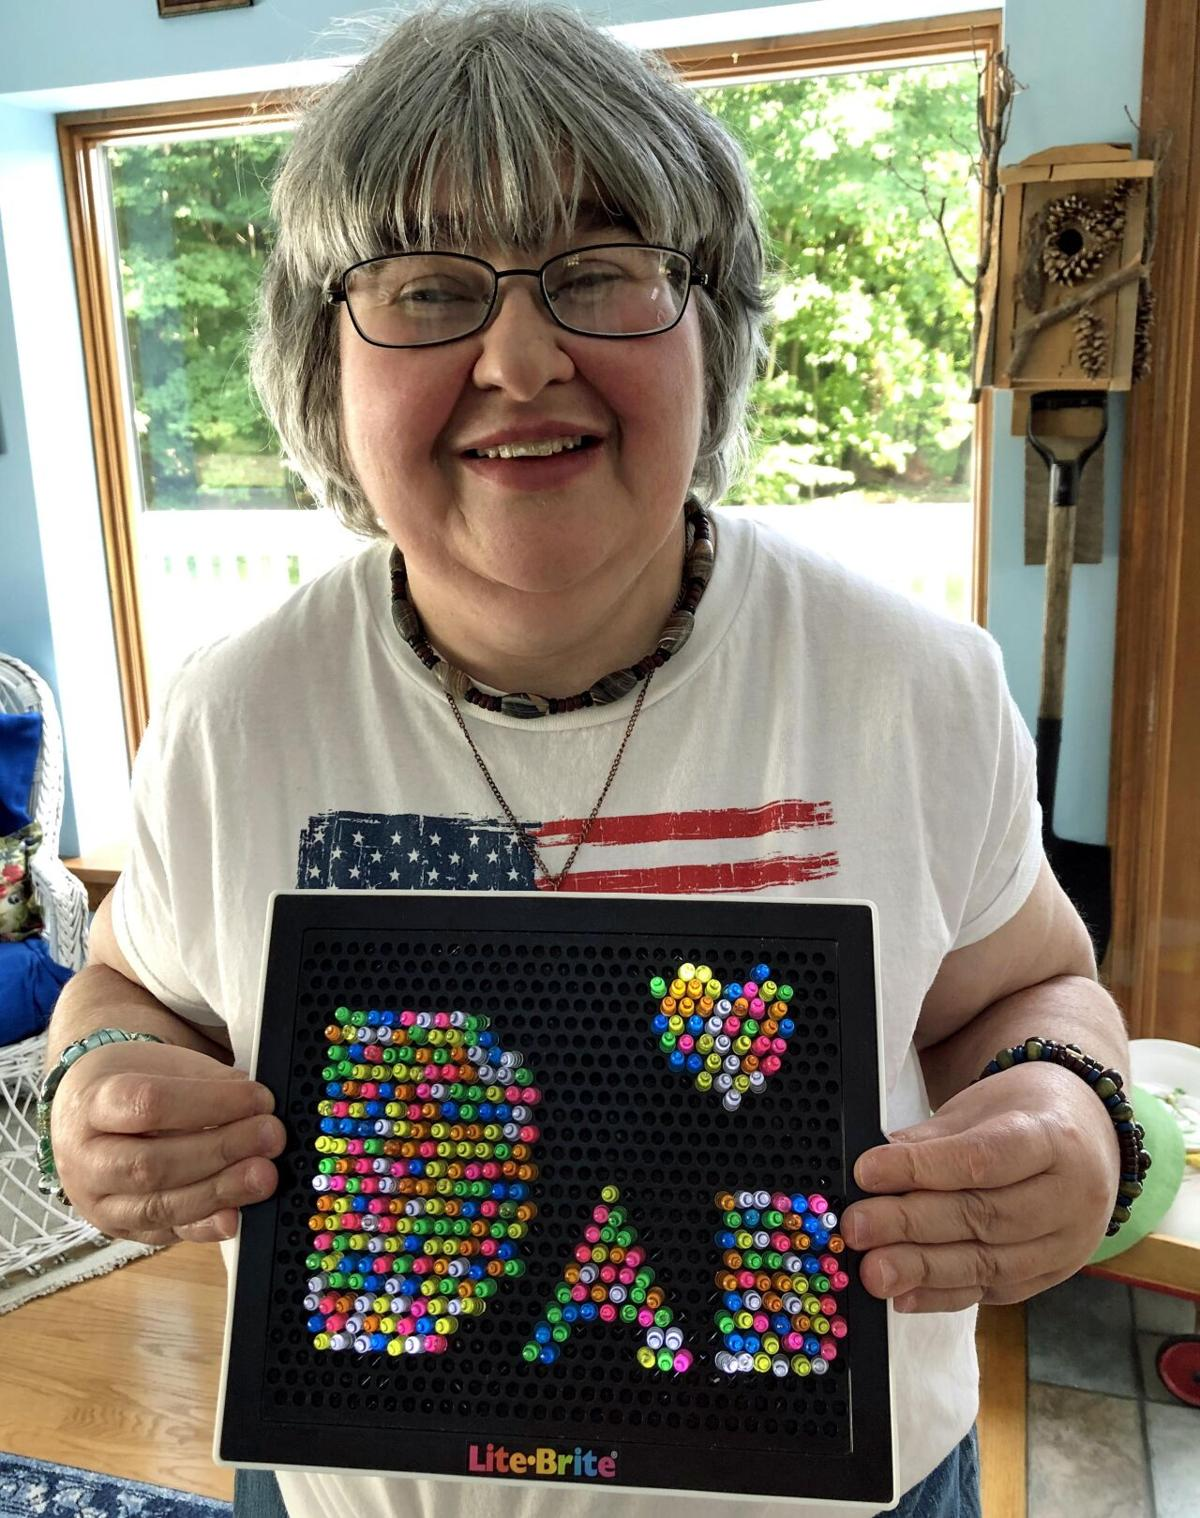 'An artist in her own way.' Legally blind woman lights up her quarantine with Lite-Brite pictures